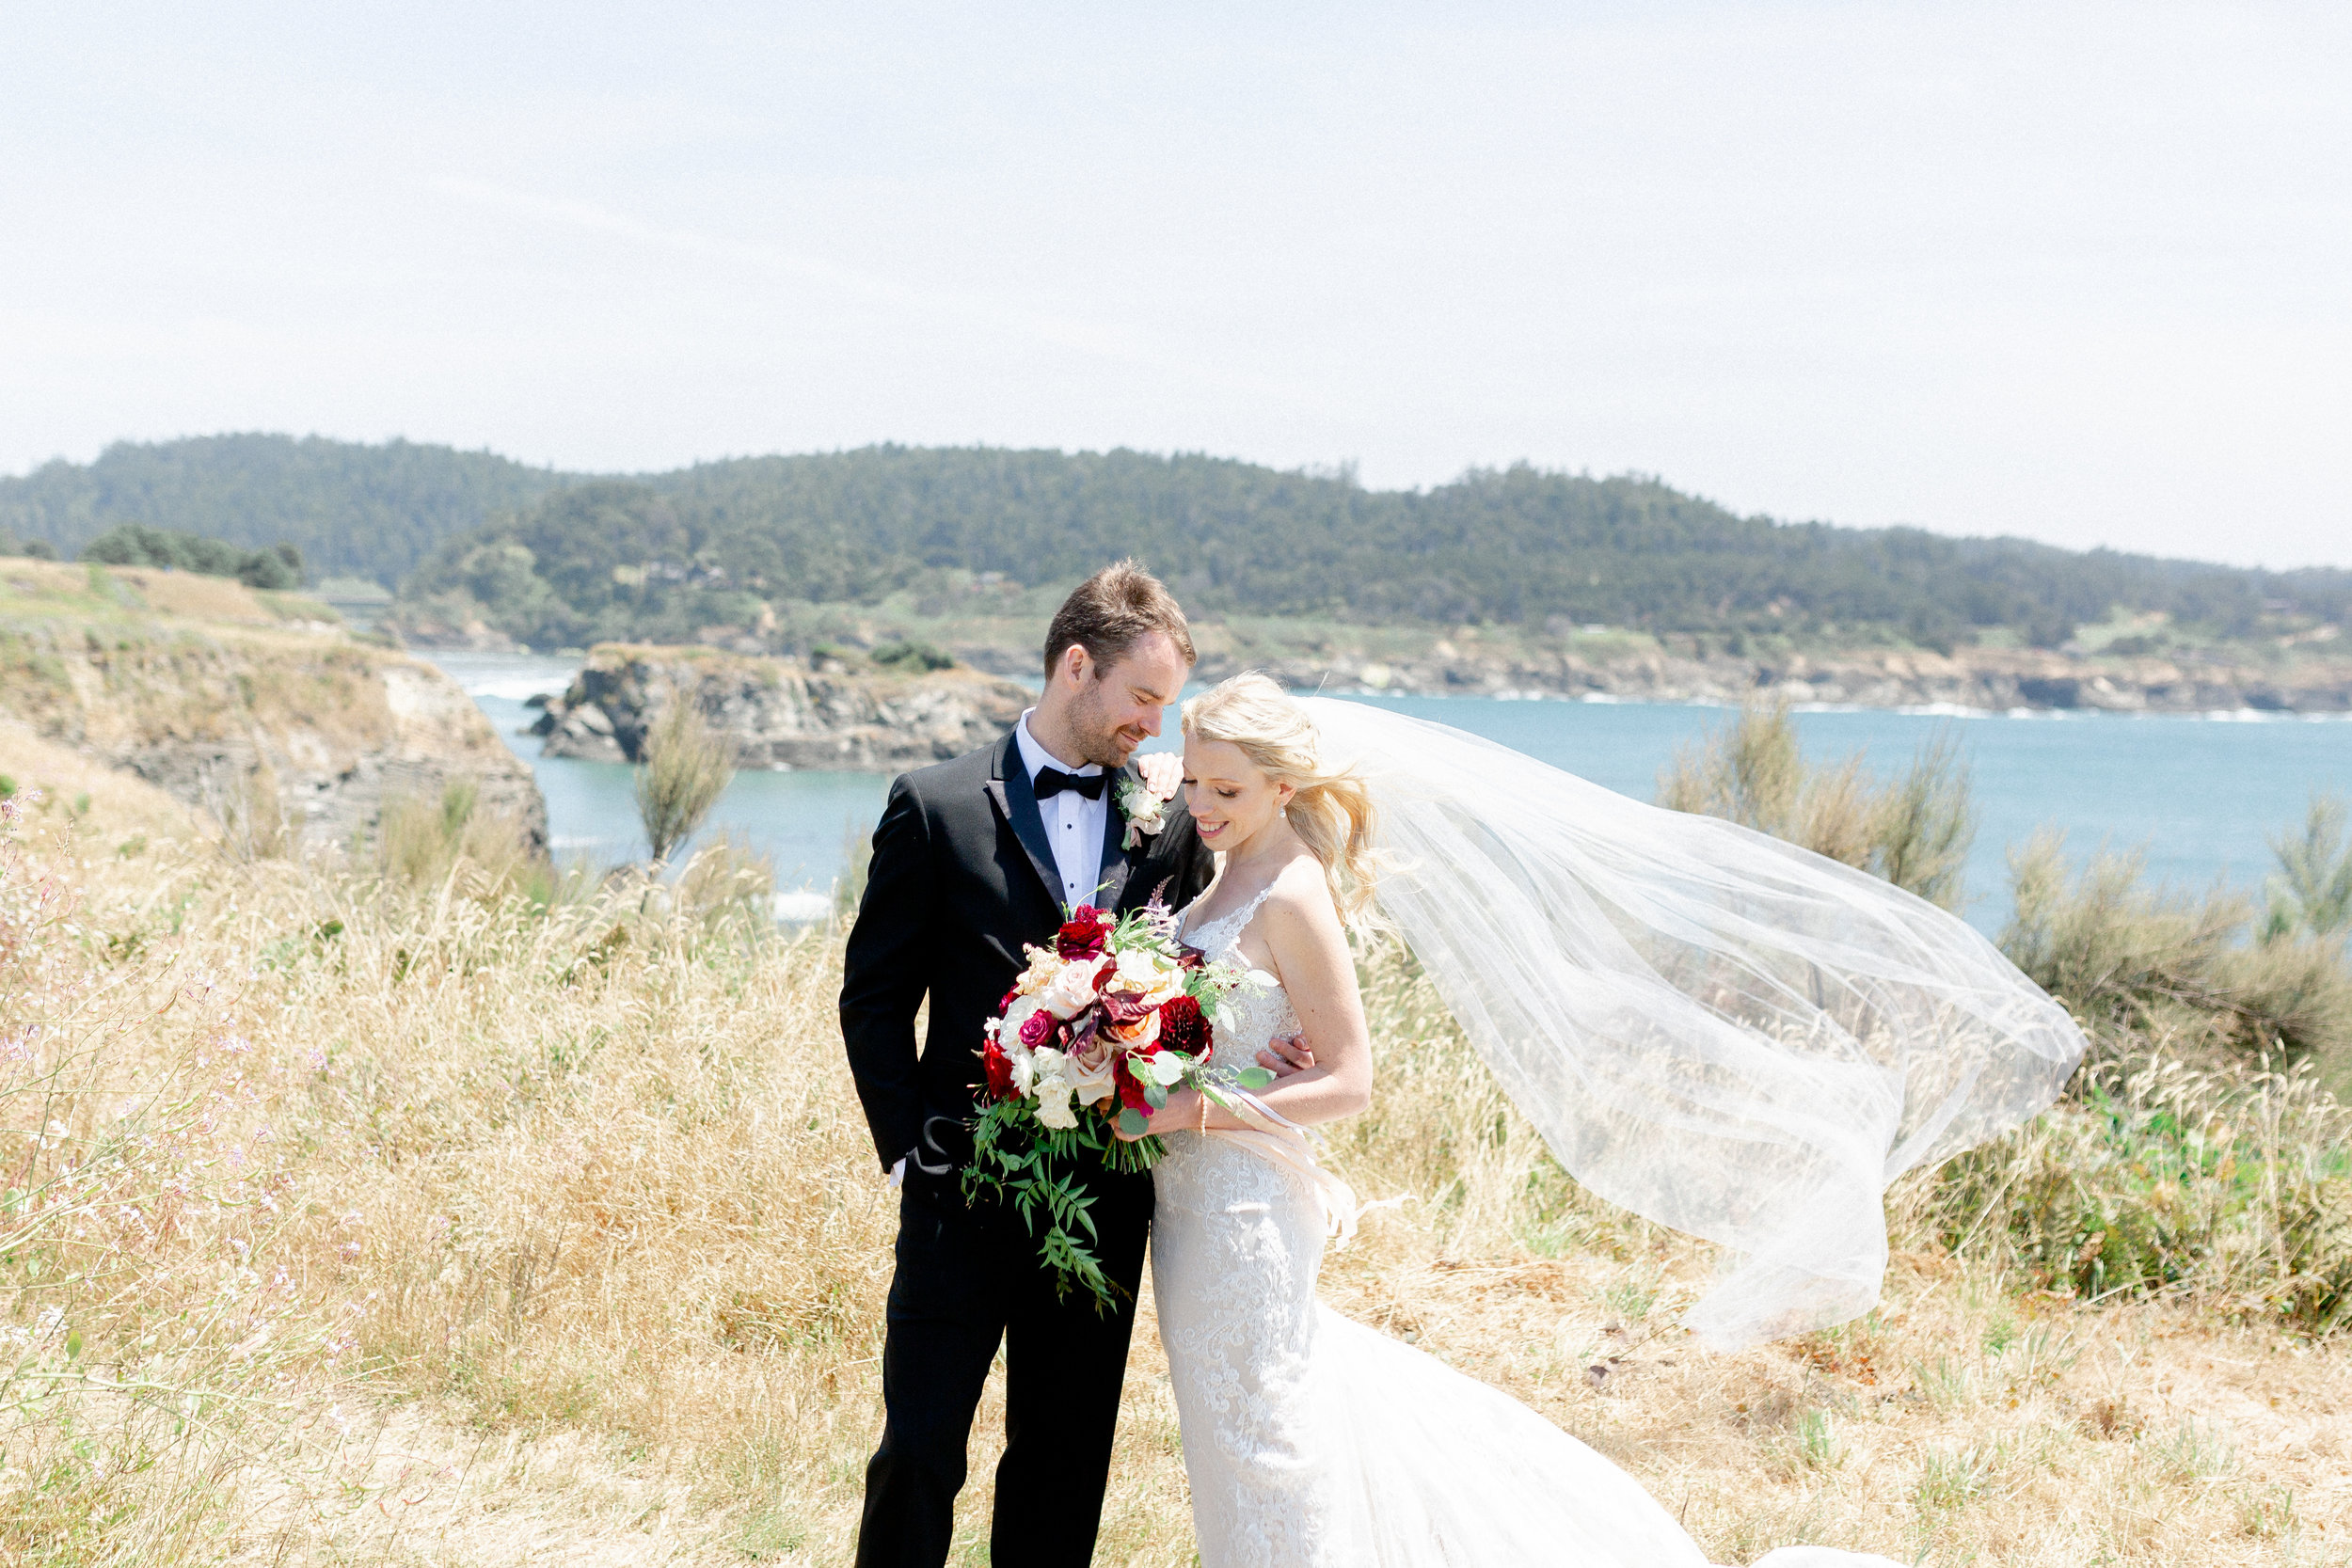 Destination-wedding-photographer-from-Northern-California.jpg